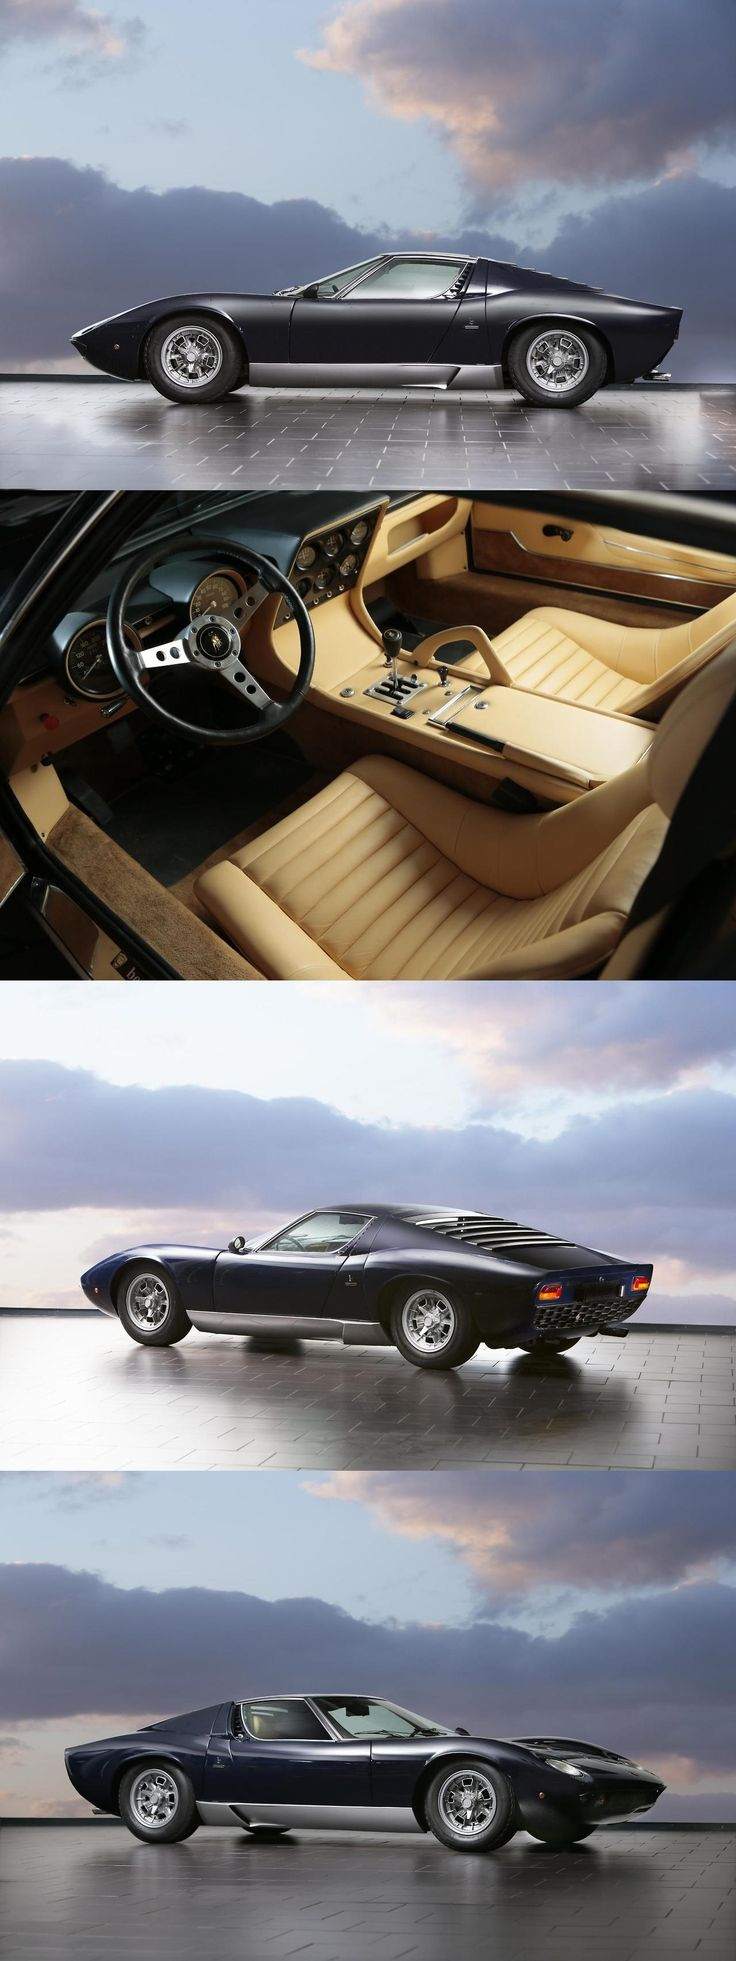 Lamborghini Miura - saw one in a junkyard once, I sat in it's dirtiness and made vroom noises...